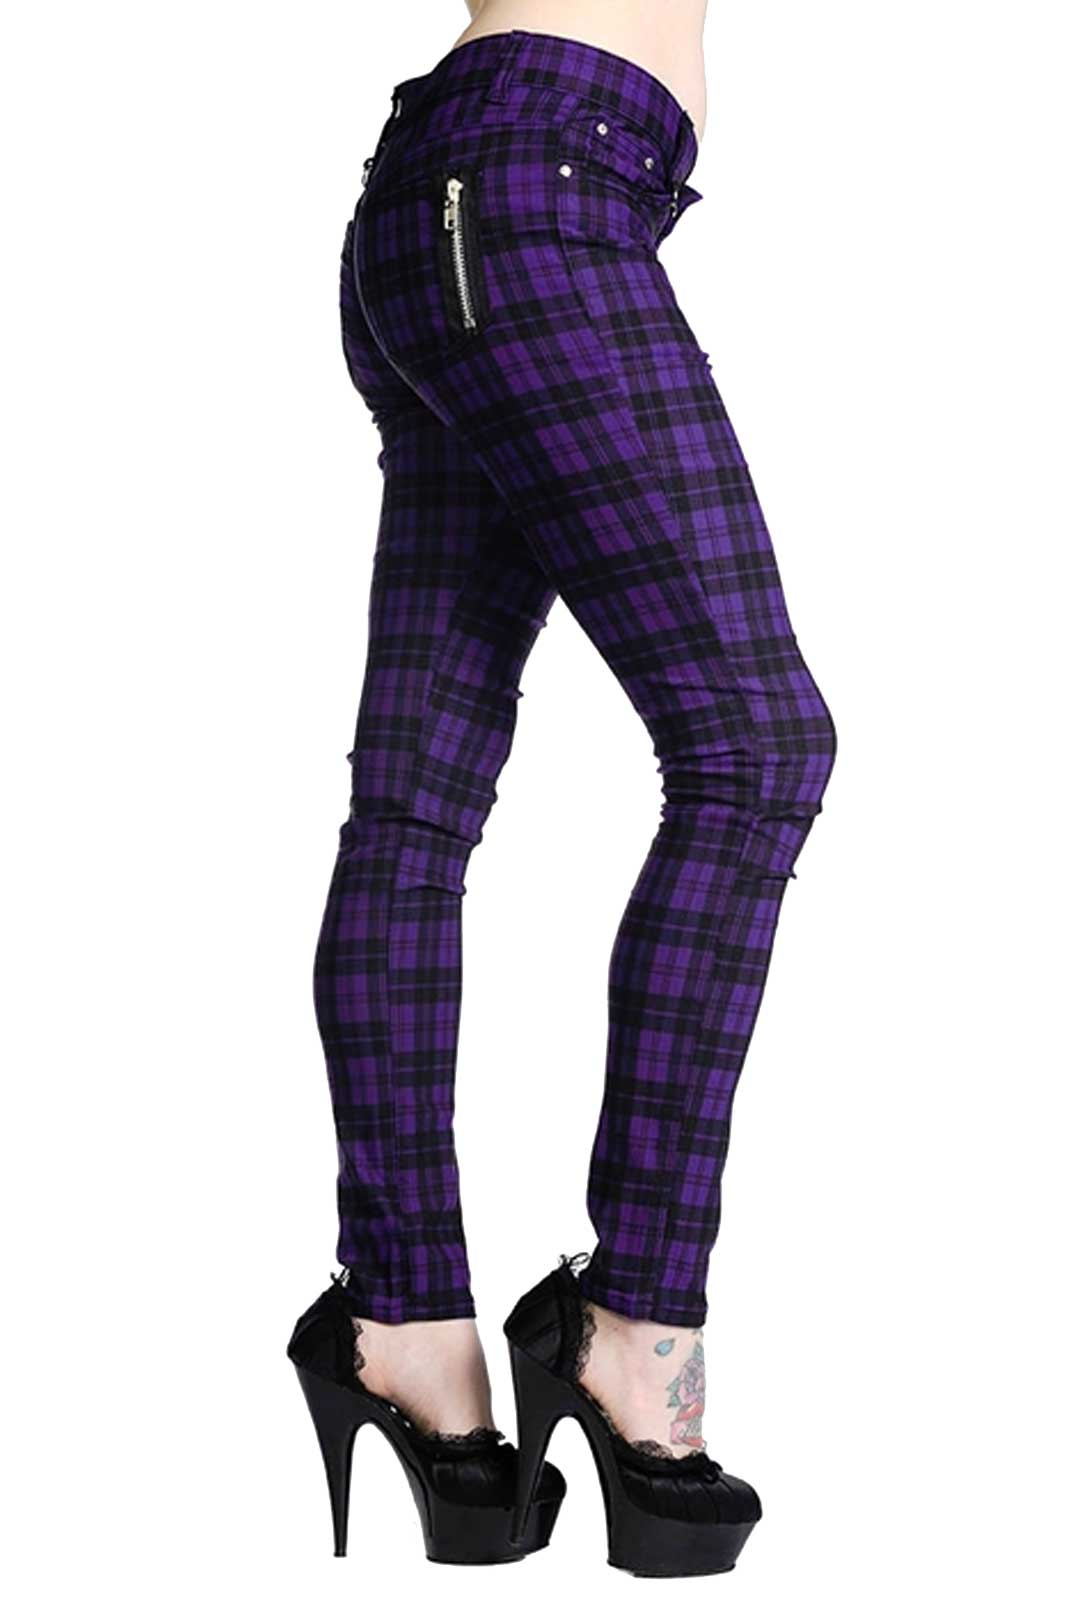 banned ladies trousers purple tartan